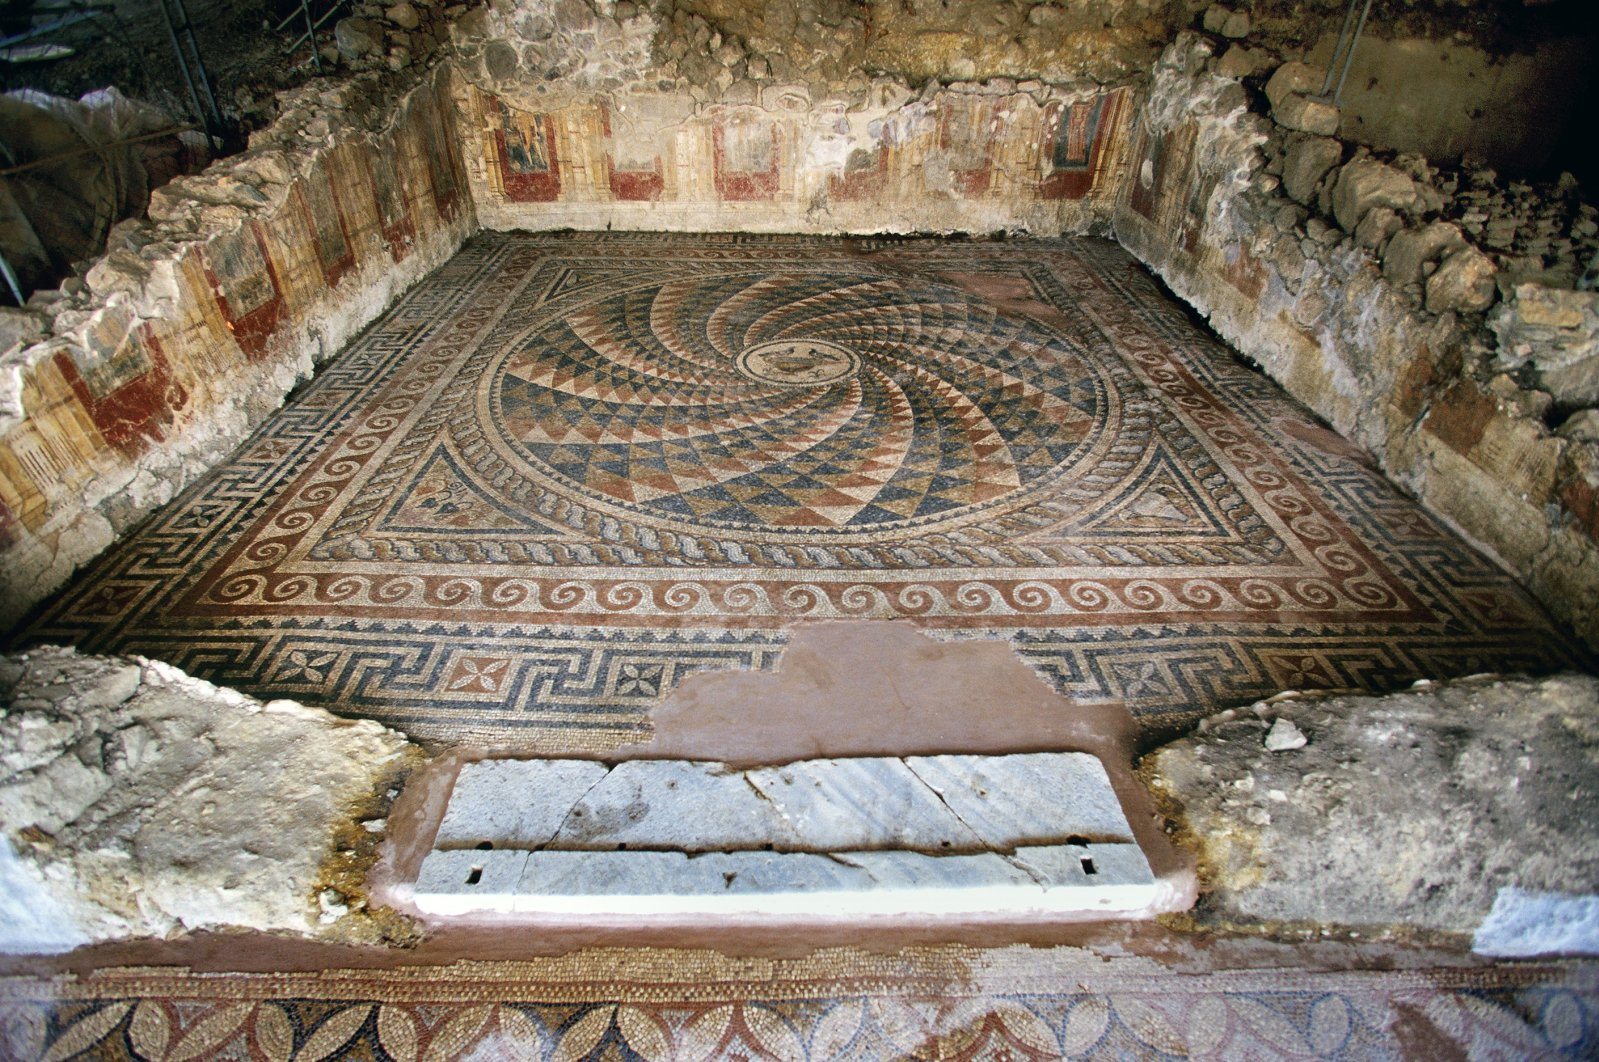 A floor of an ancient building adorned with mosaic patterns, discovered at the ancient city of Antandros, Balıkesir, western Turkey, Jan. 27, 2021. (AA Photo)